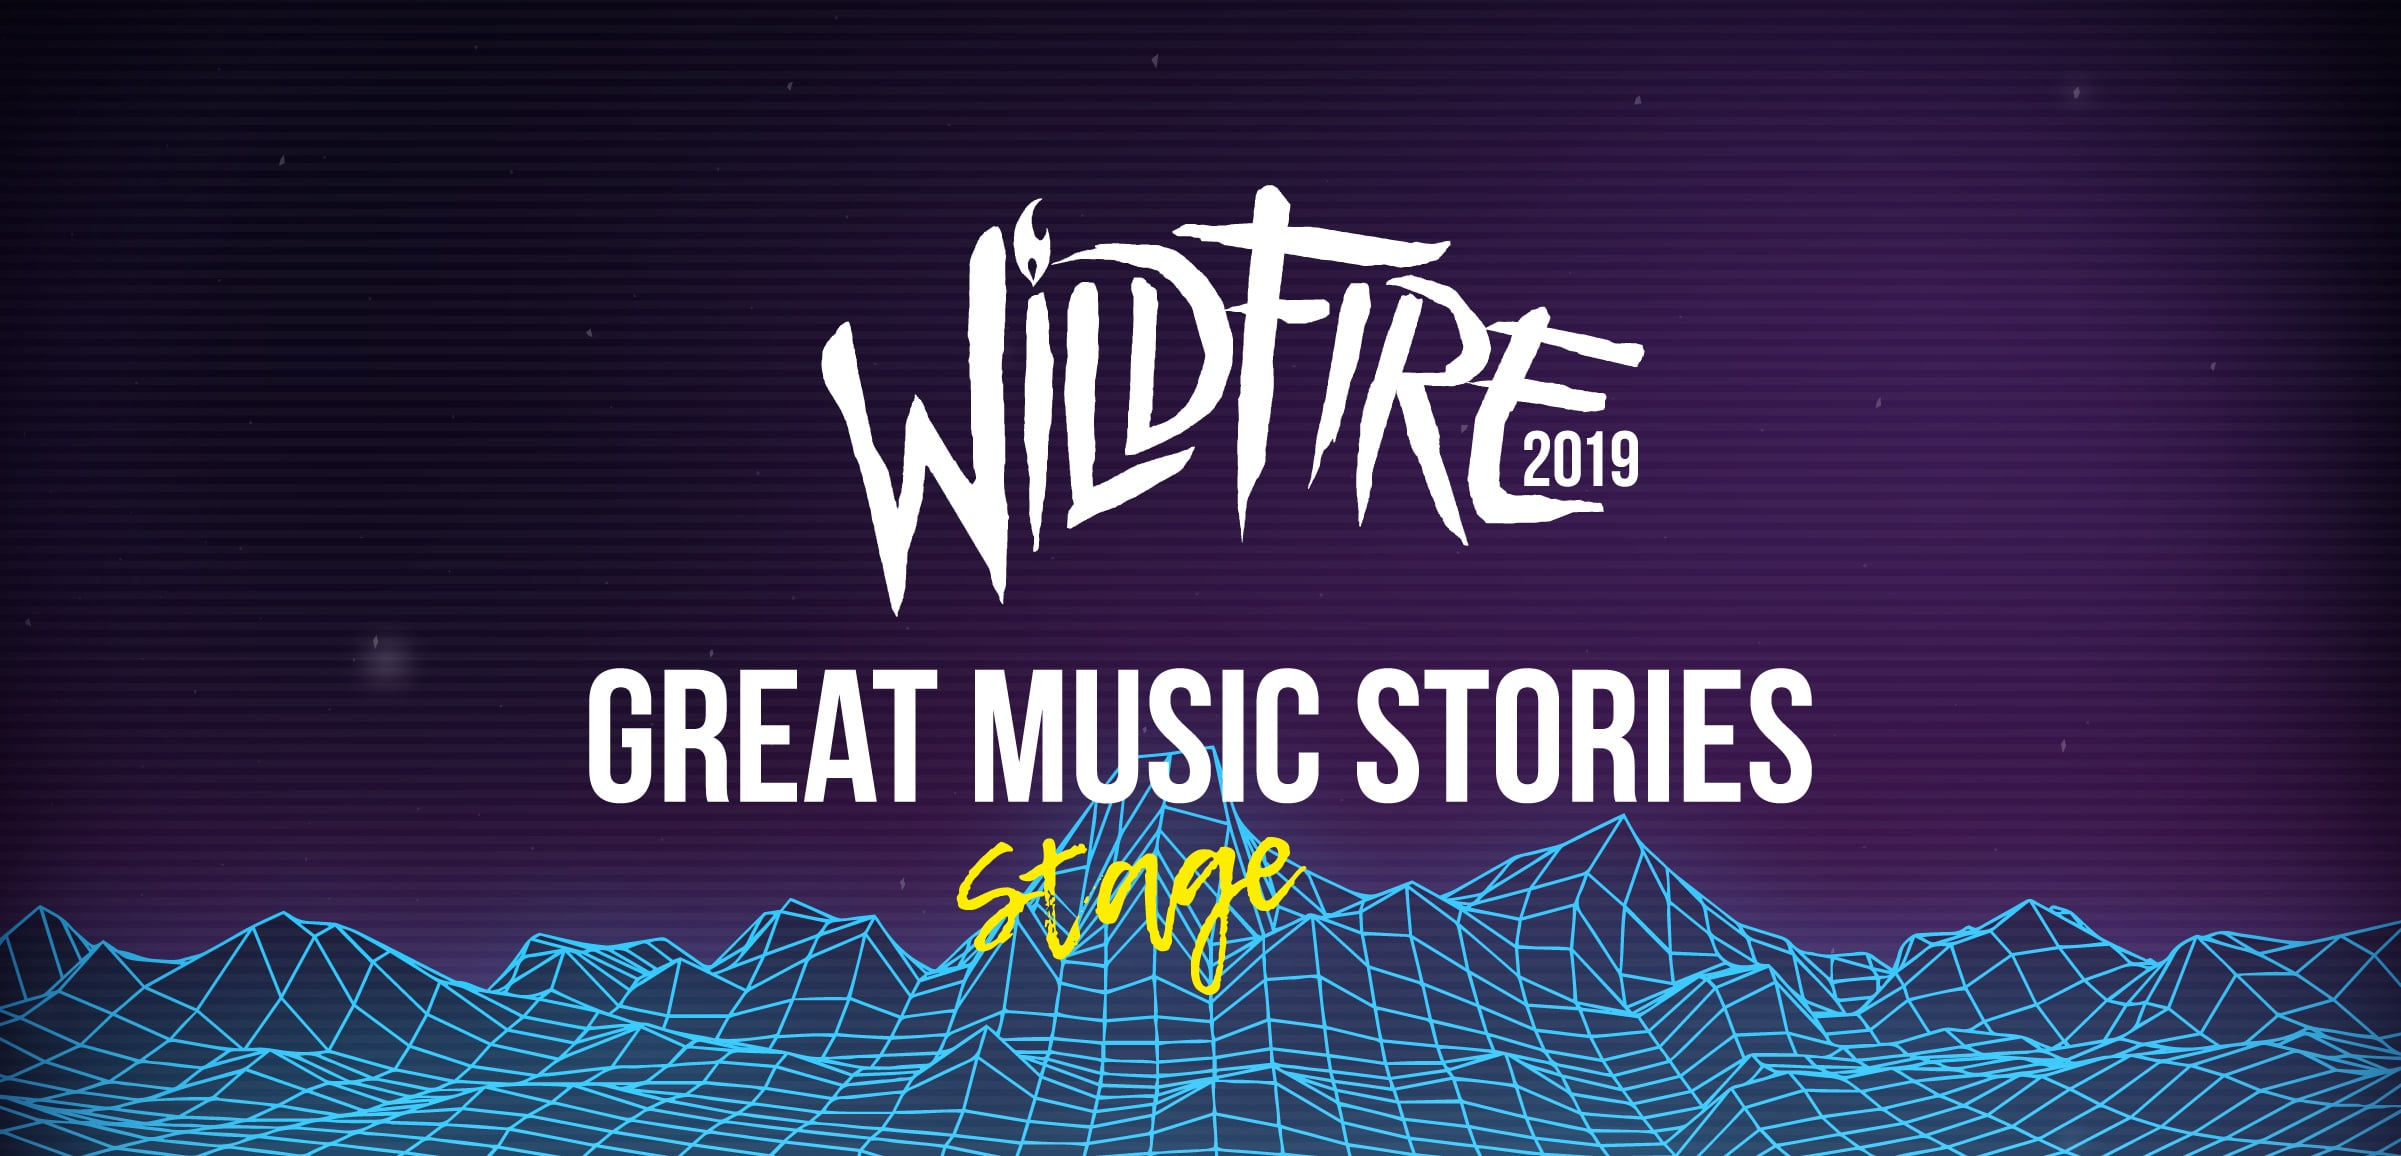 Wildfire 2019